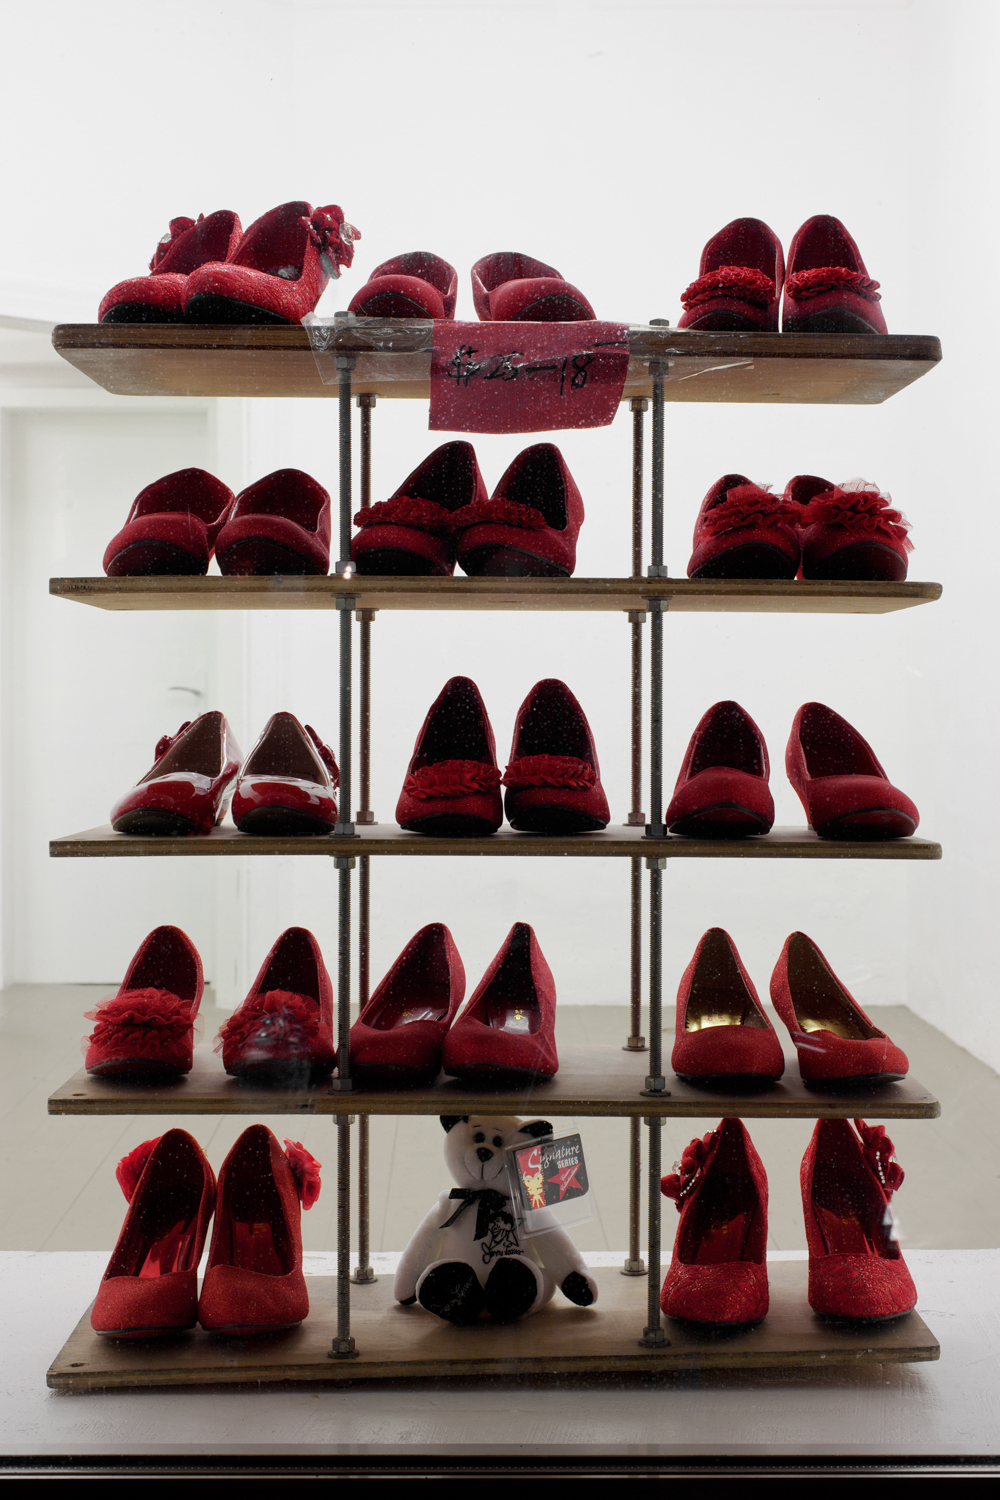 Red Shoes: Bootleg II (Resoled)   2014   Metal, wood, fabric, plastic, rubber, tape, paper, ink, glitter   Dimensions variable